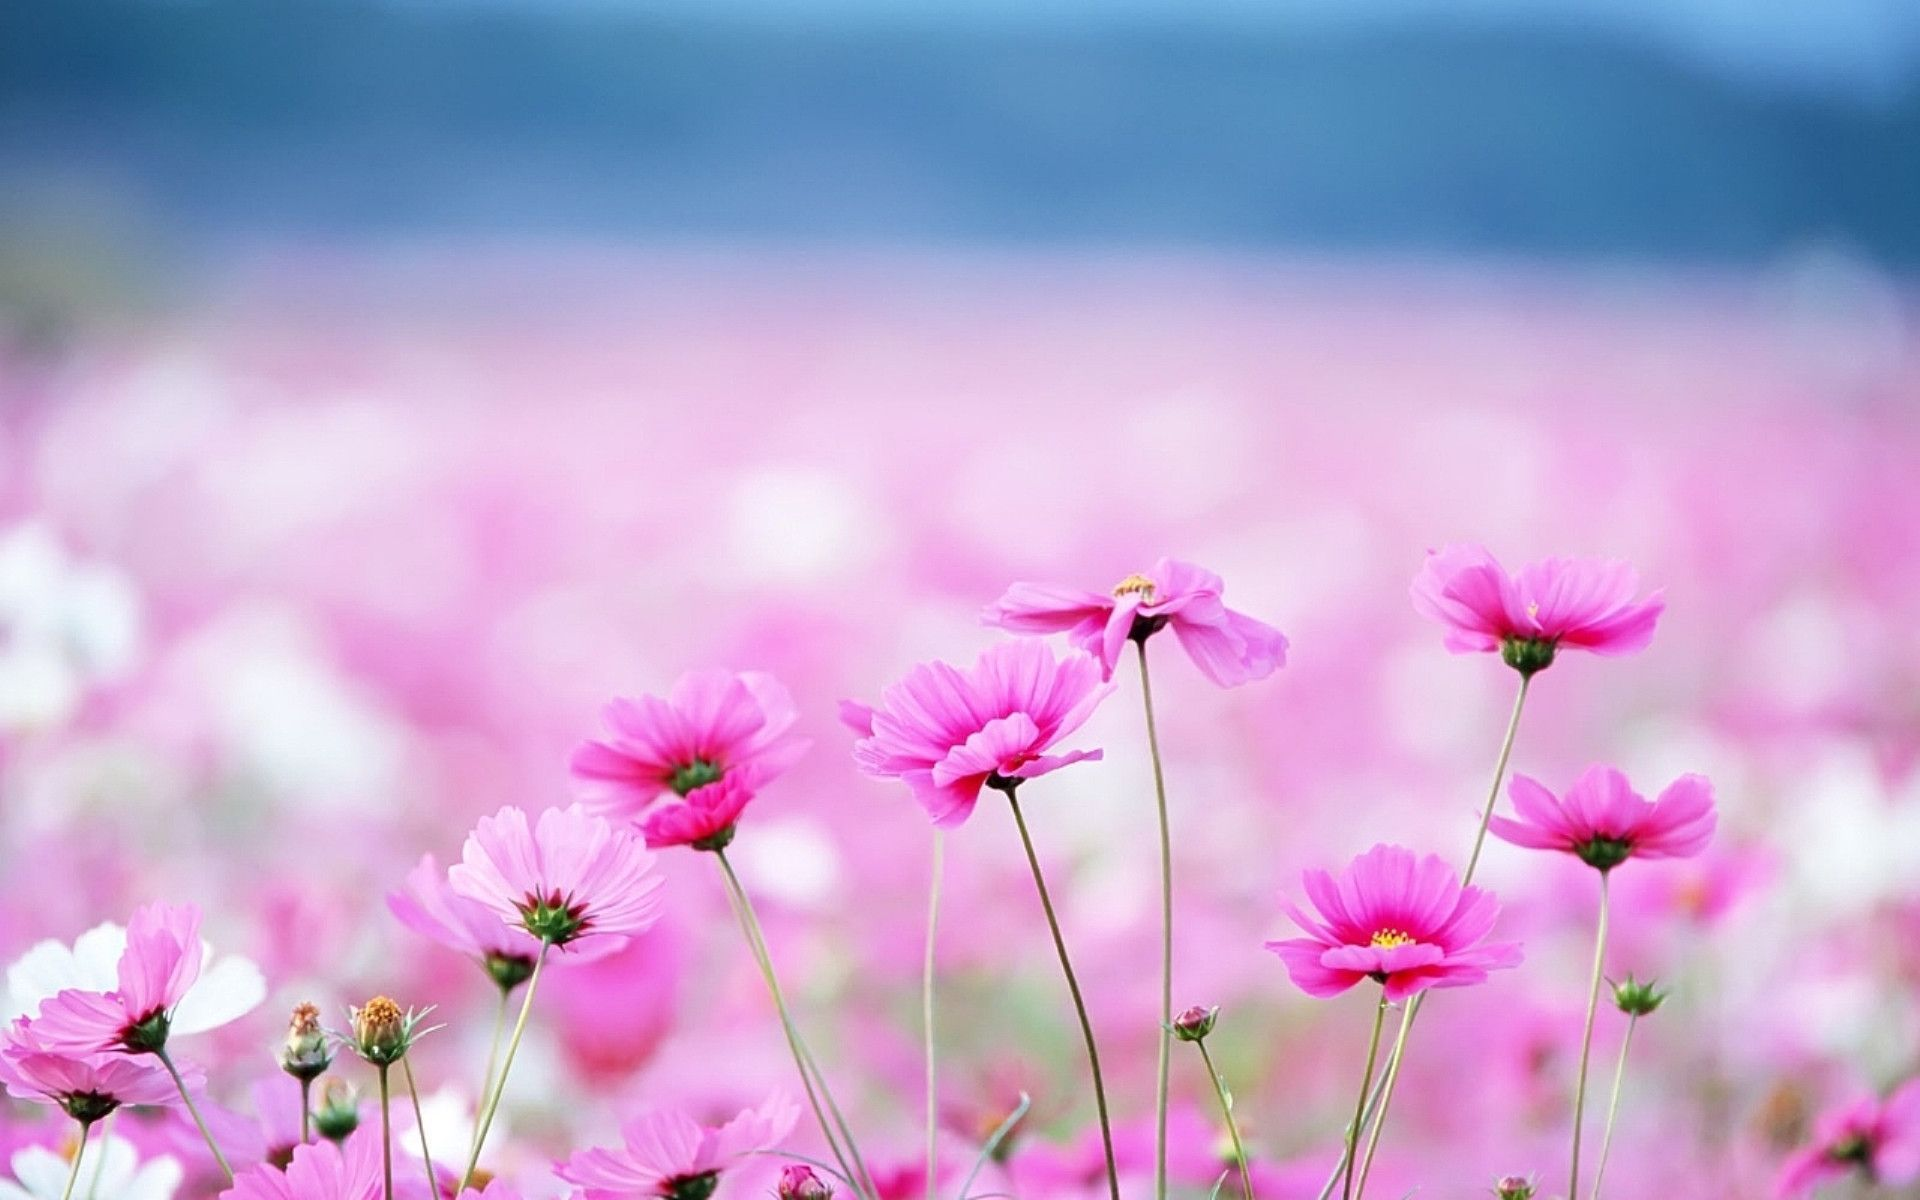 Pink Flower Desktop Purple Wallpaper For Computer The Post Appeared First On Share Online